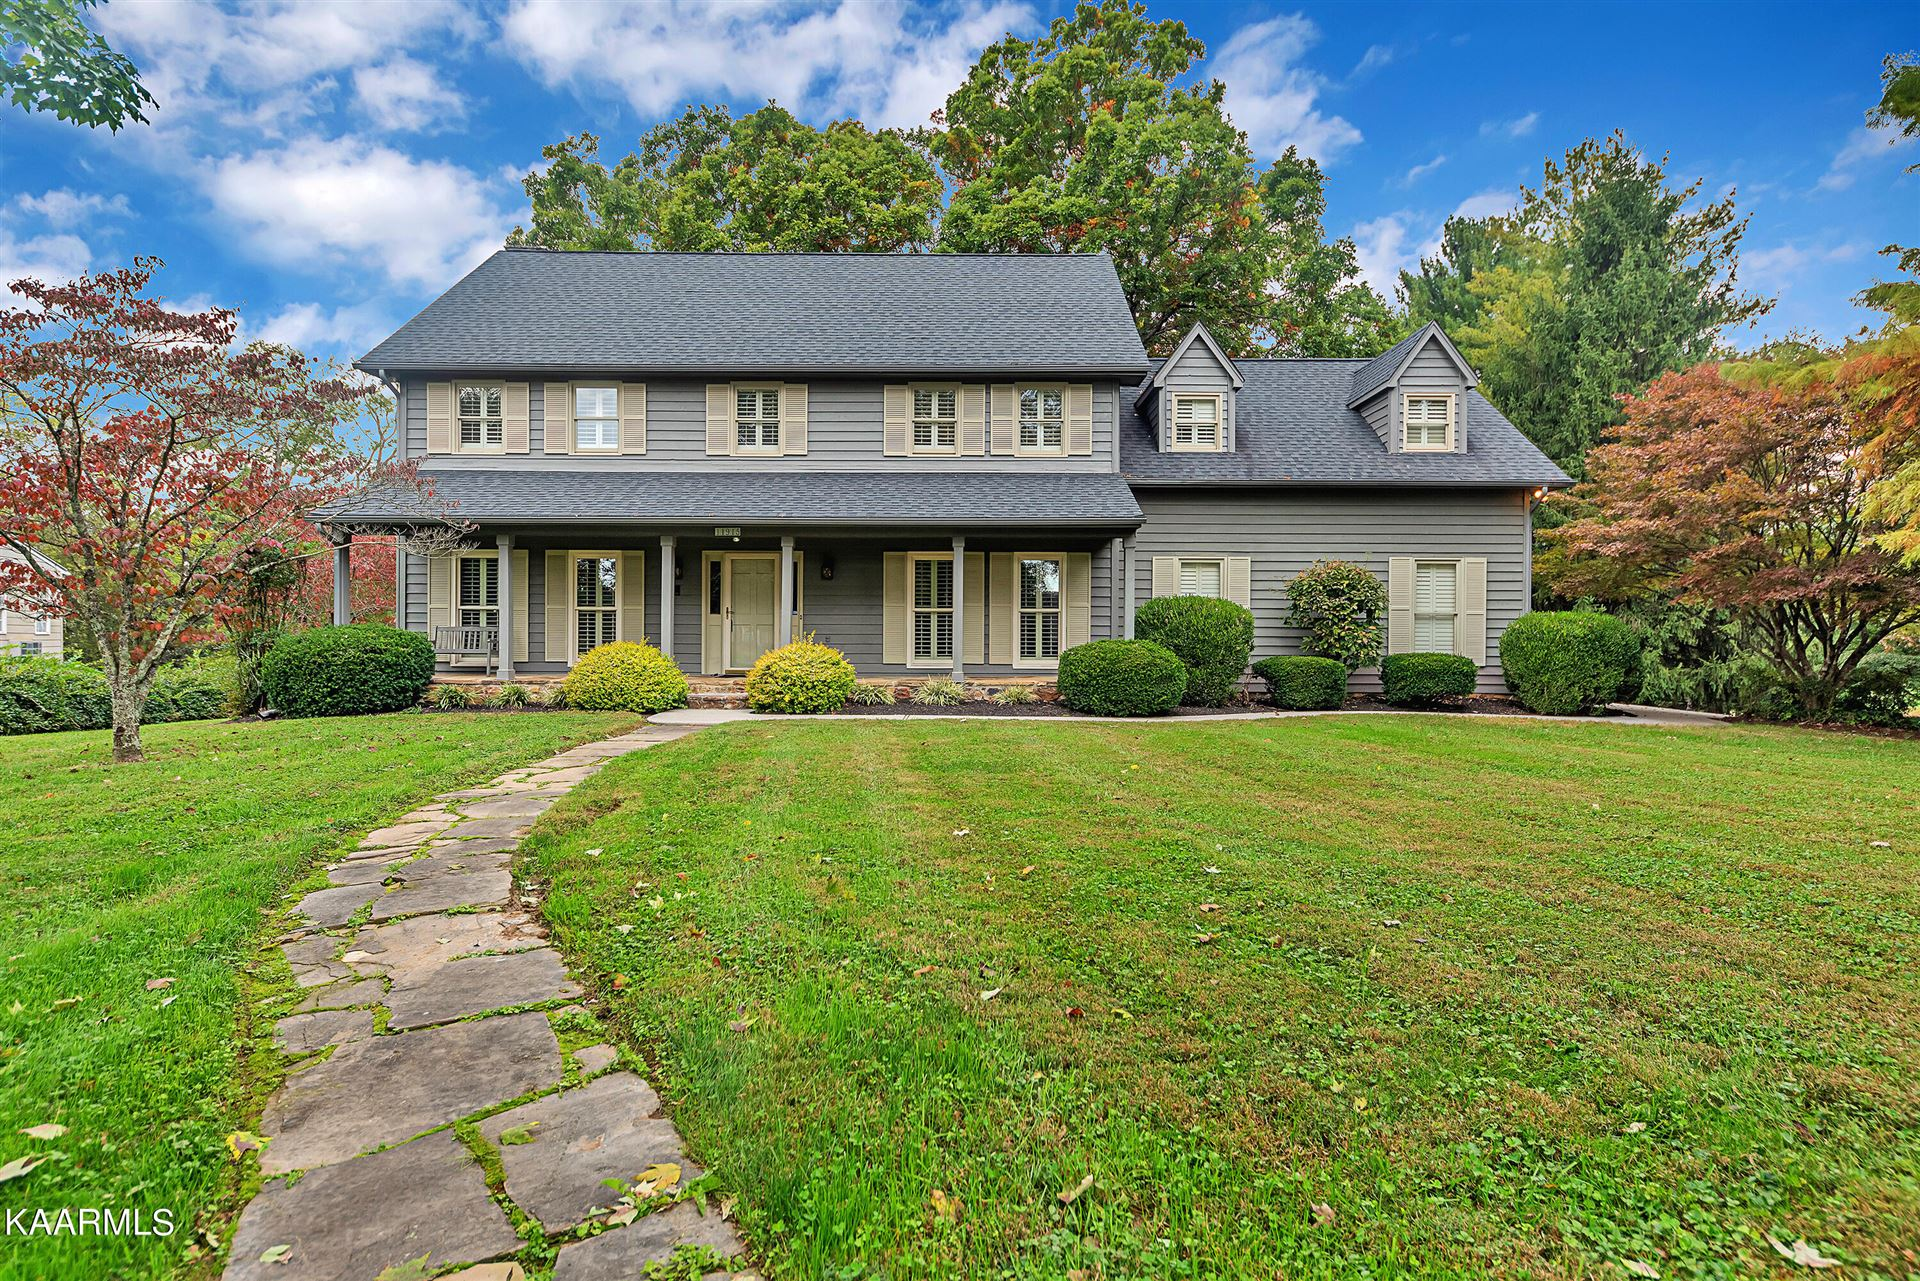 Photo of 11915 W Fox Chase Circle, Knoxville, TN 37934 (MLS # 1171802)